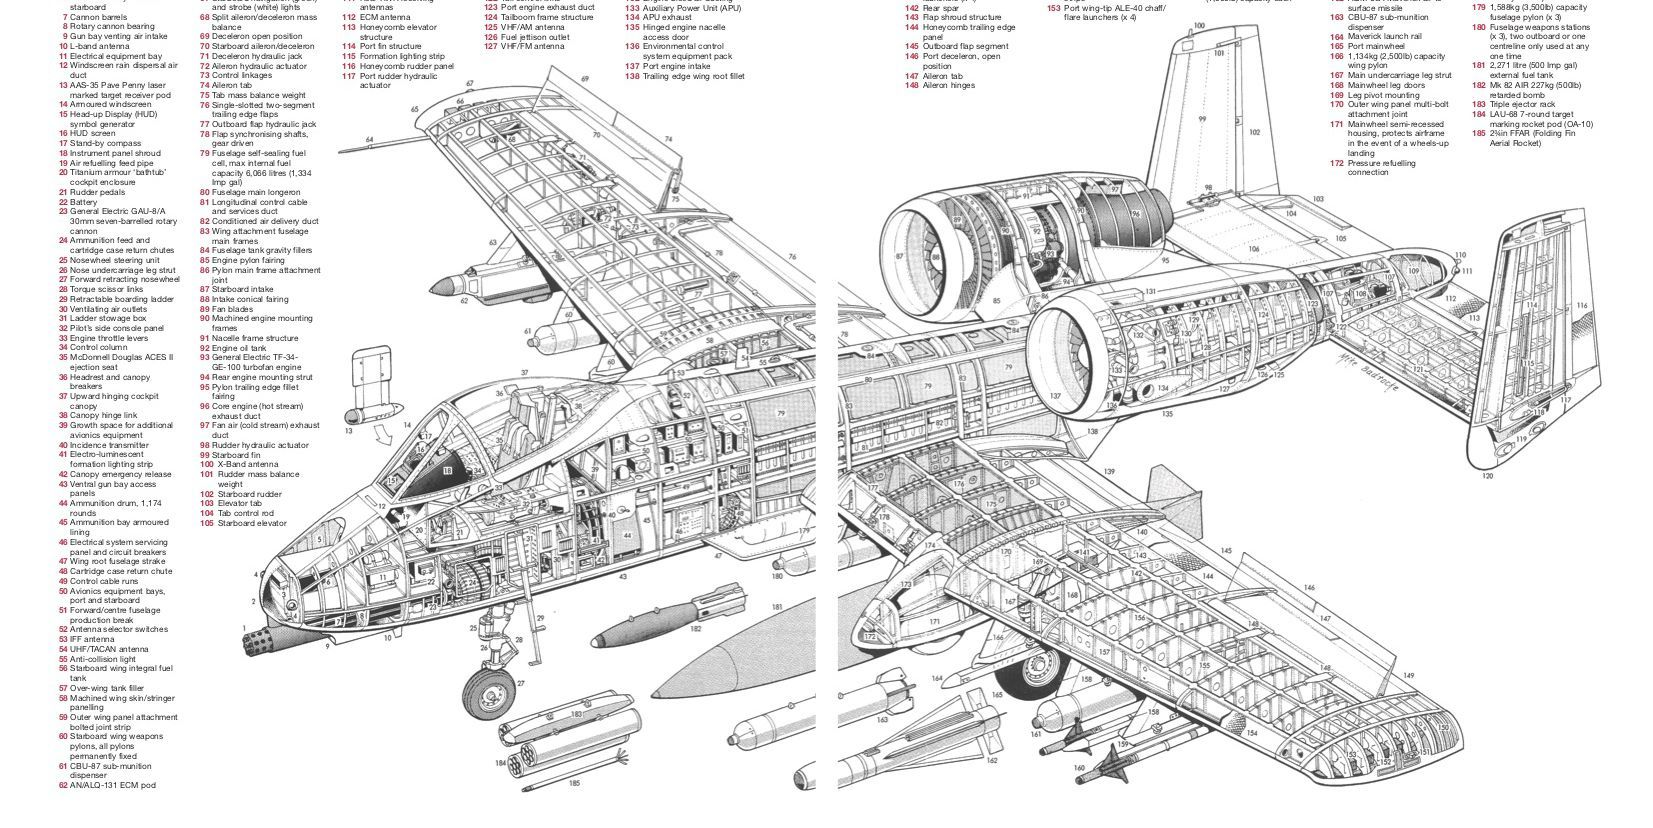 Check Out This Exhaustively Detailed Manual For The A 10